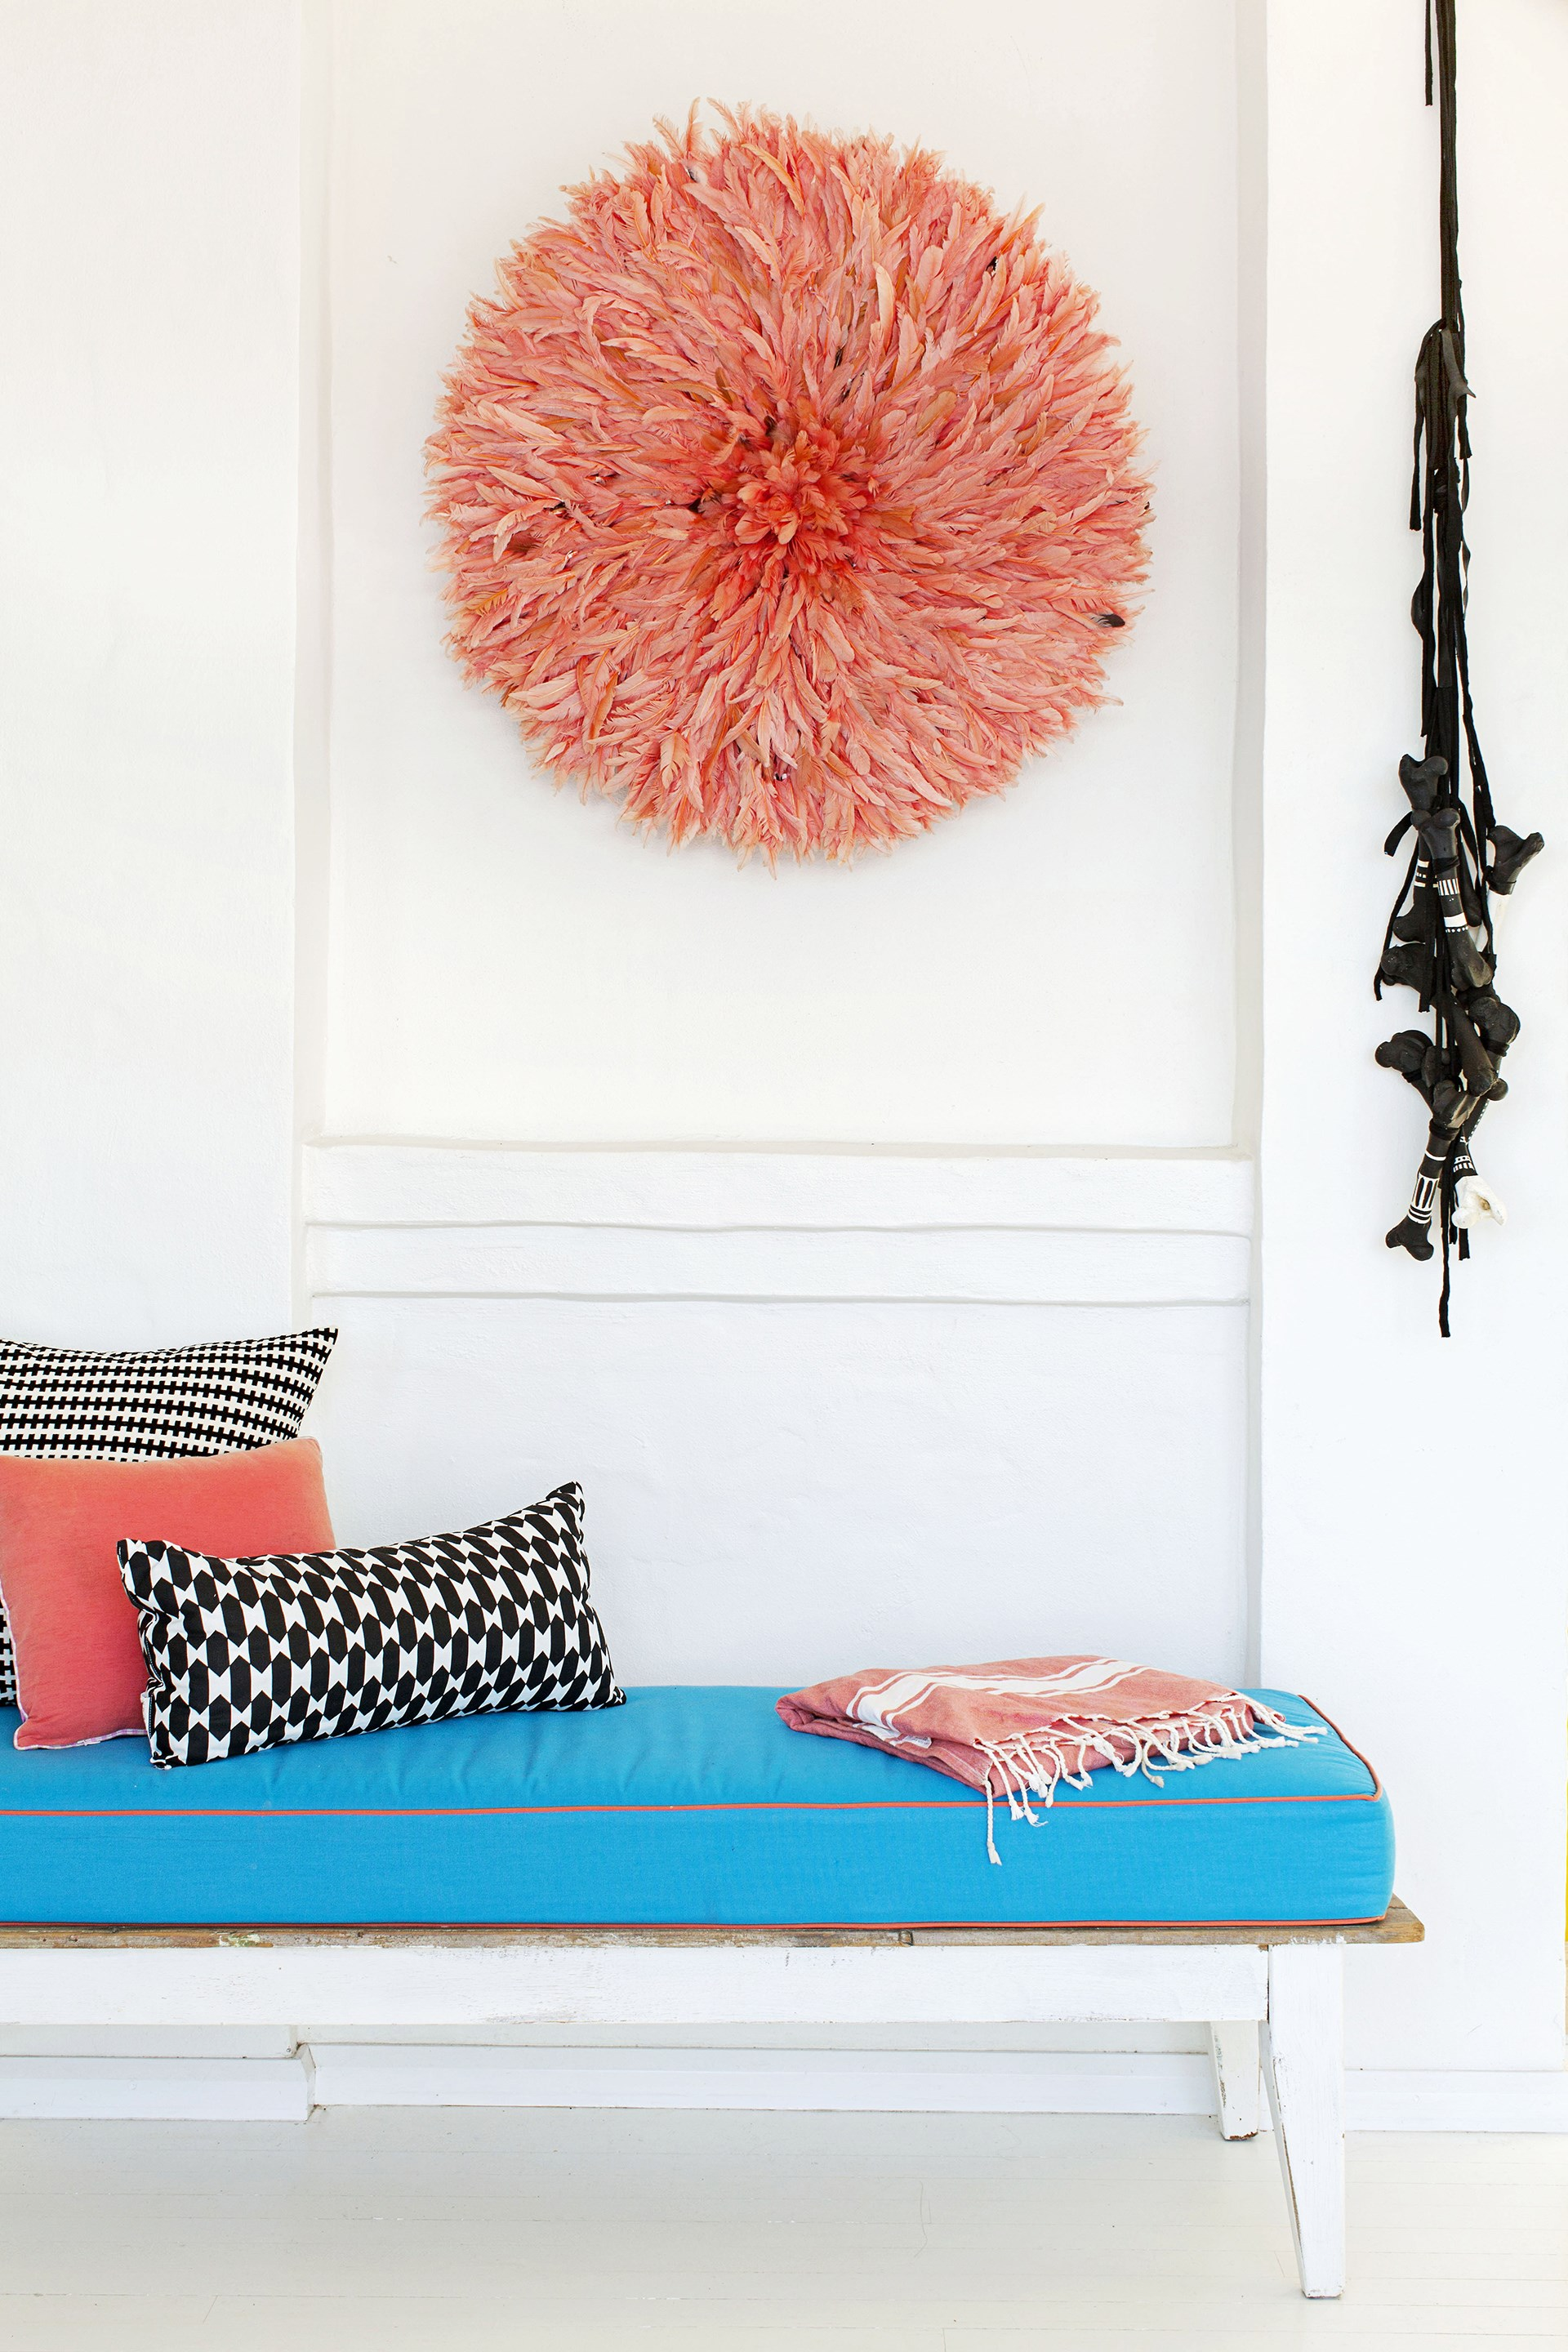 """Vibrant watermelon-pink adds warmth to this [Moroccan-inspired beach house](http://www.homestolove.com.au/gallery-heidis-moroccan-inspired-beach-house-1830